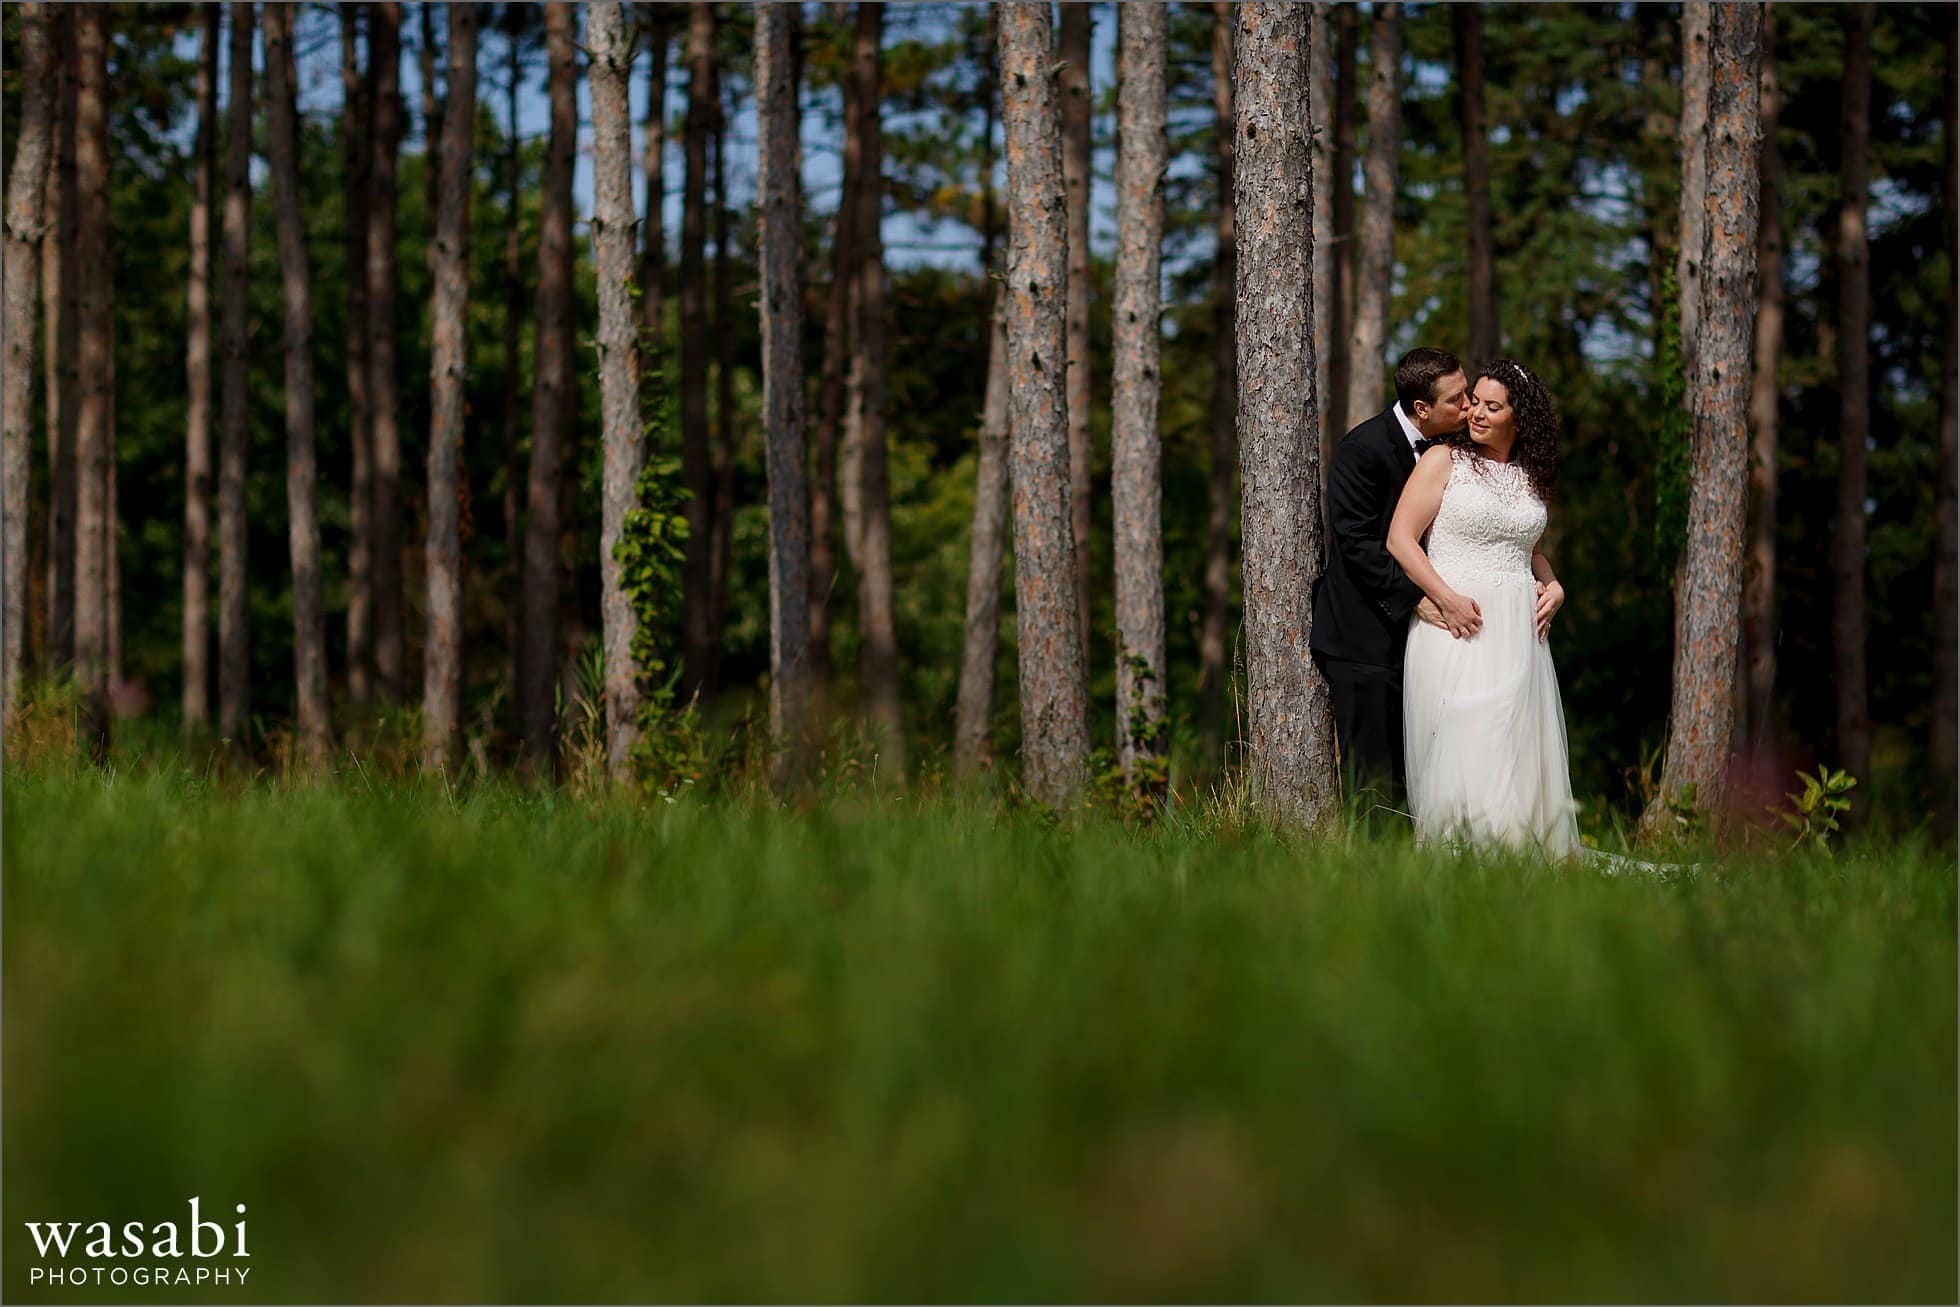 bride and groom pose for morton arboretum wedding photos in front of pine tree grove forest